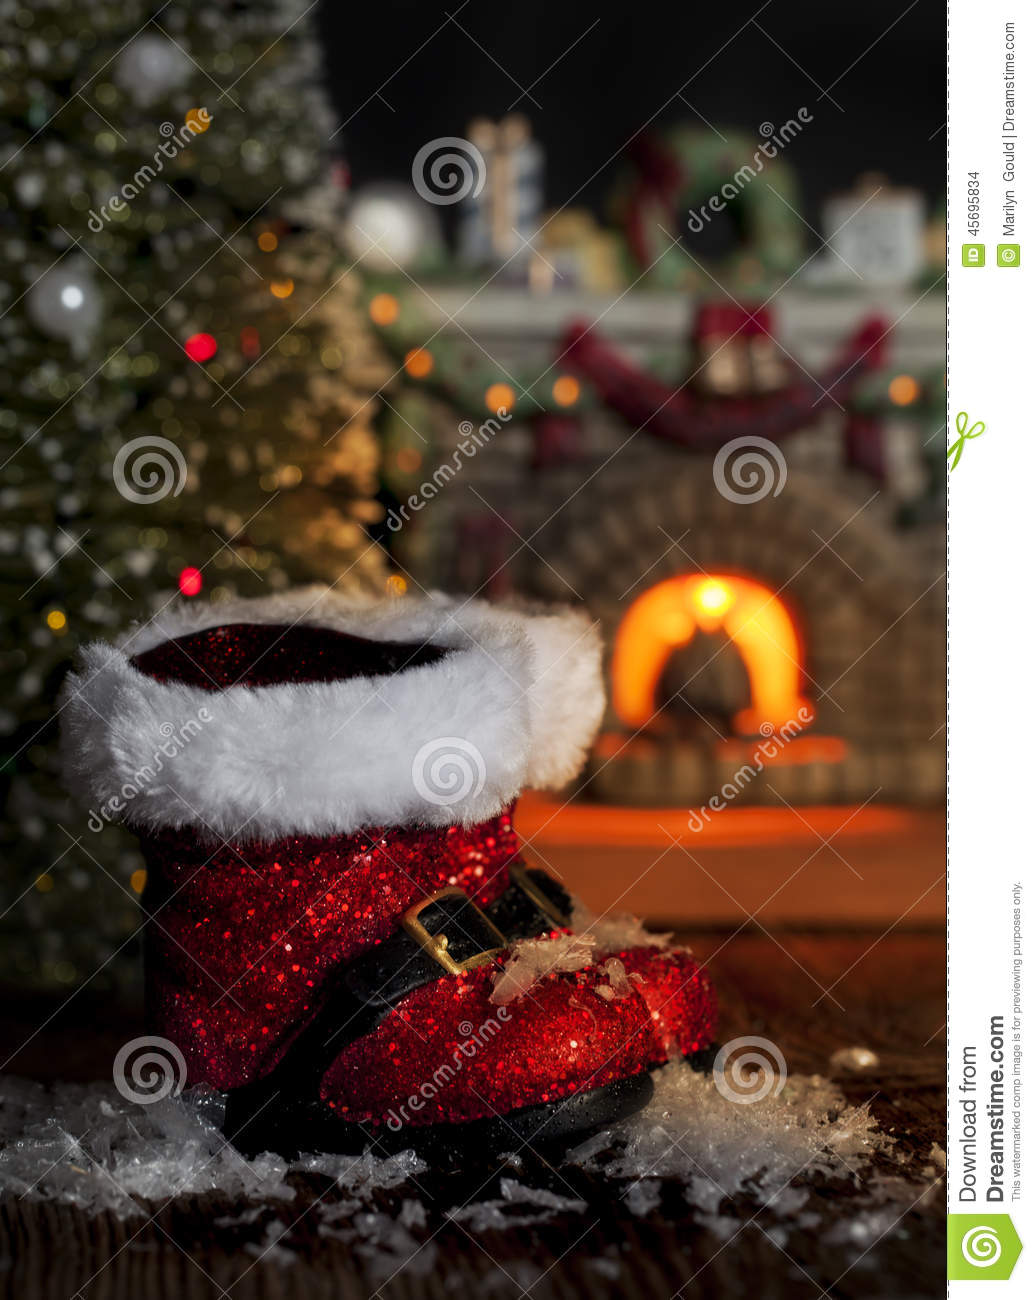 Red Santa Boots Melting Snow Stock Photo Image 45695834